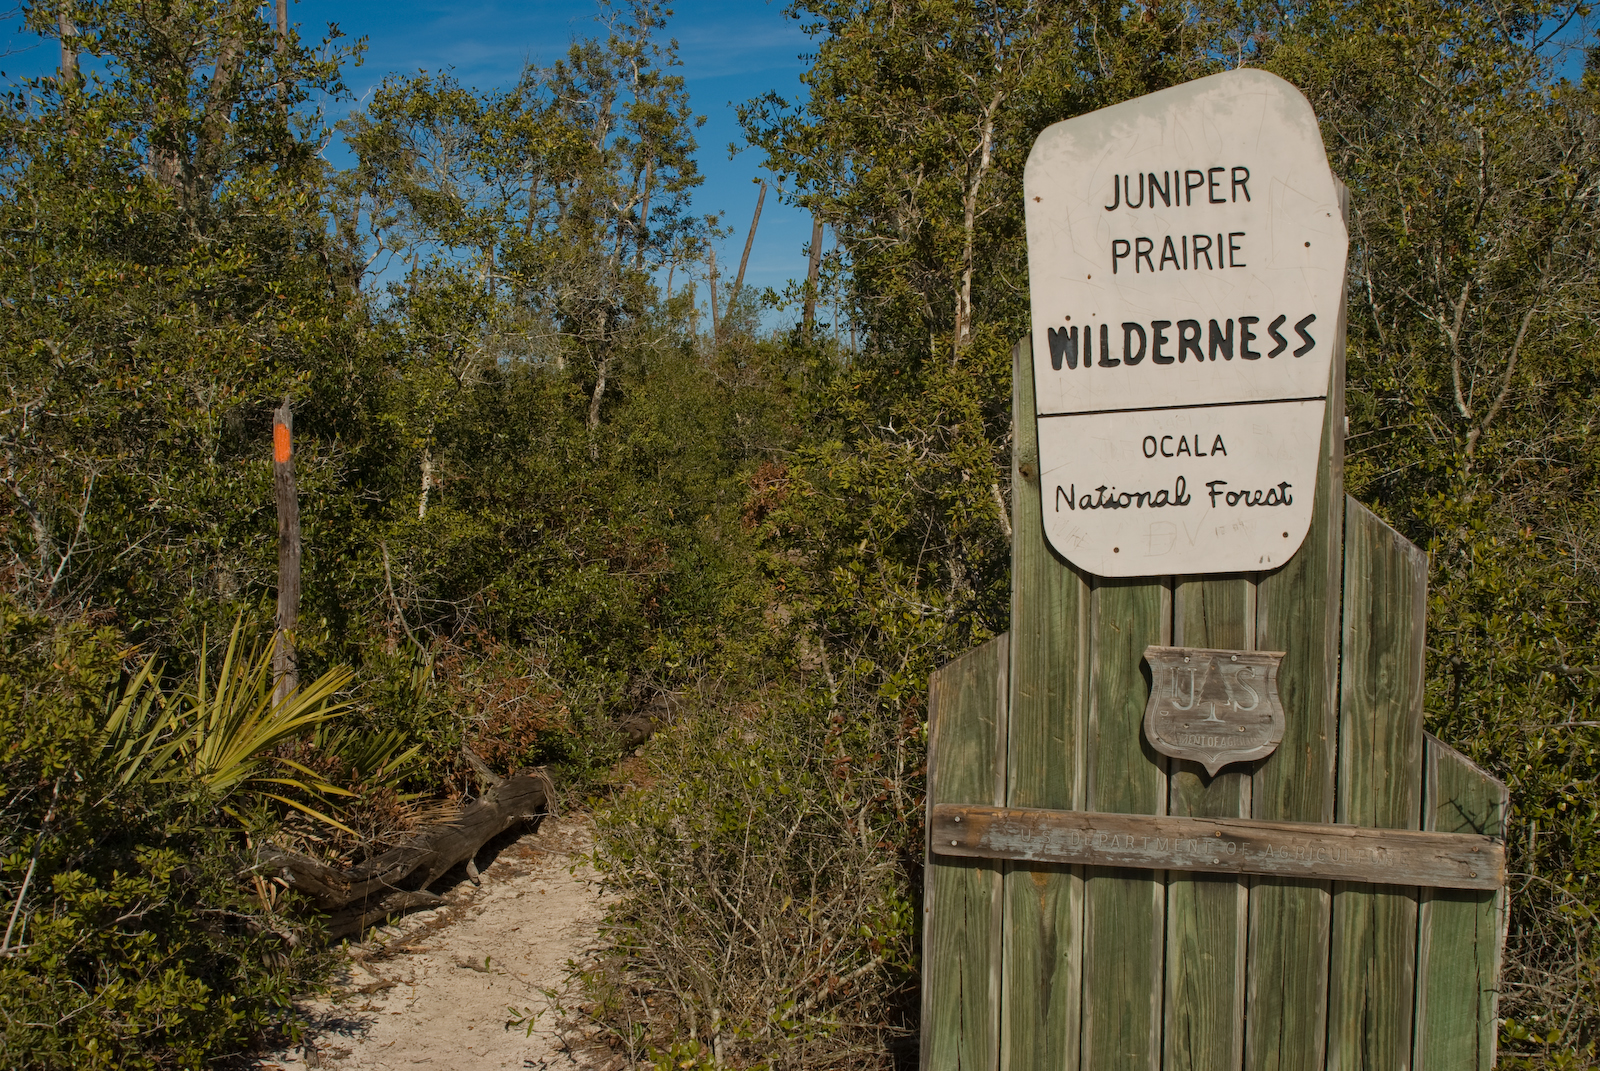 Juniper Prairie Wilderness south entrance